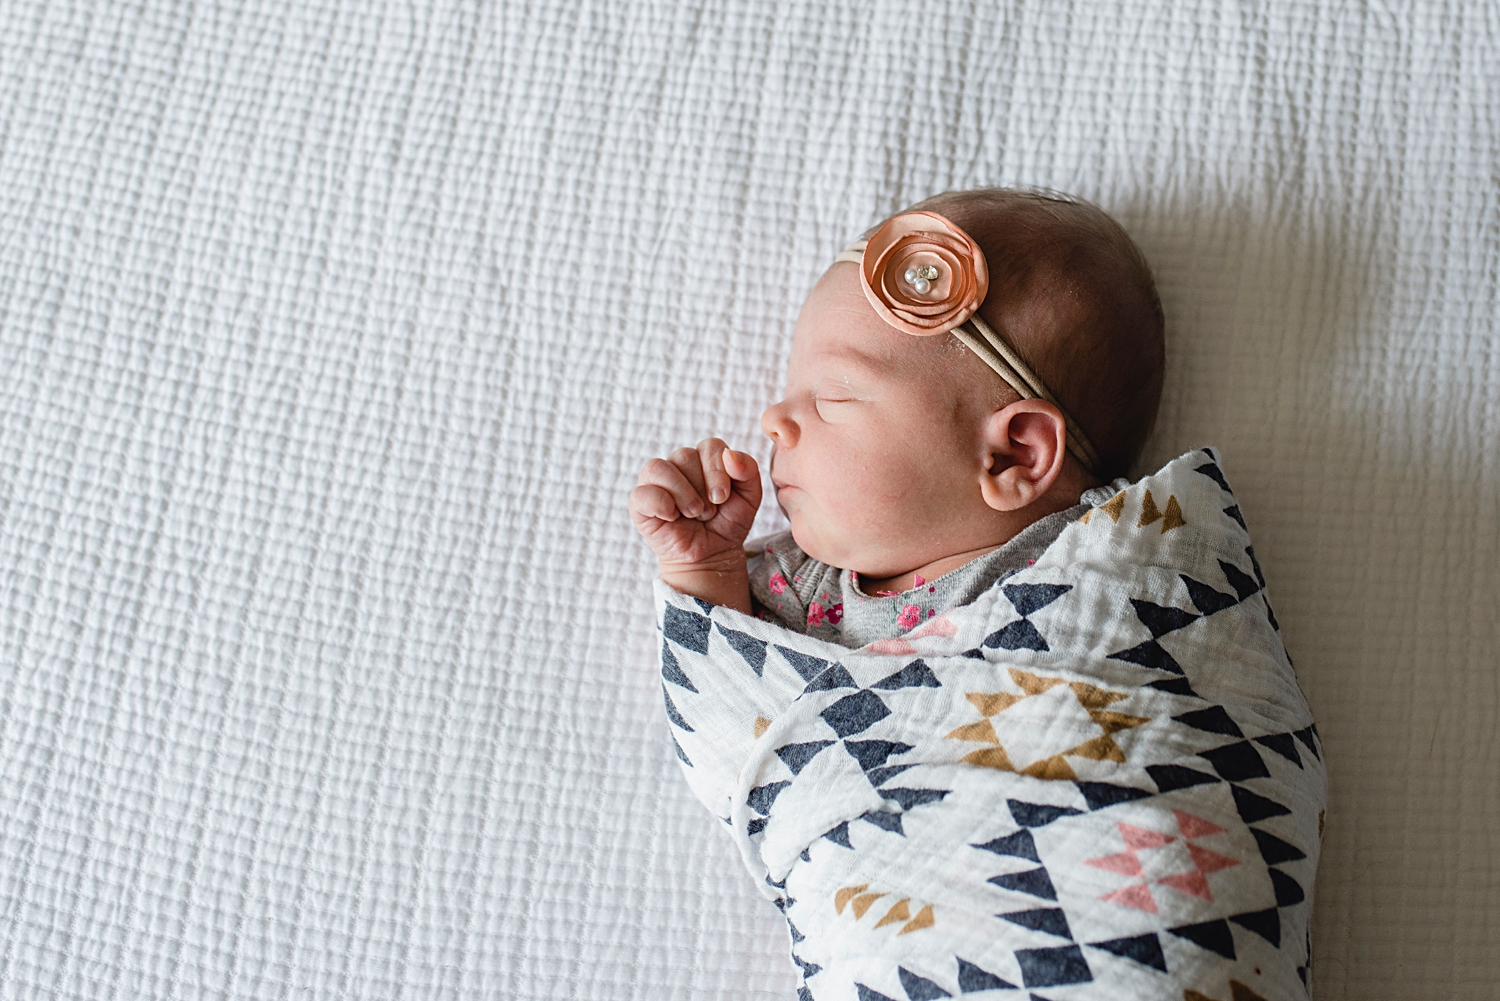 A newborn baby girl is swaddled in an Aztec printed baby wrap during a Highlands Ranch Newborn Baby Photo Shoot in South Denver with Kristiina Craven Photography. #denvernewbornphotographer